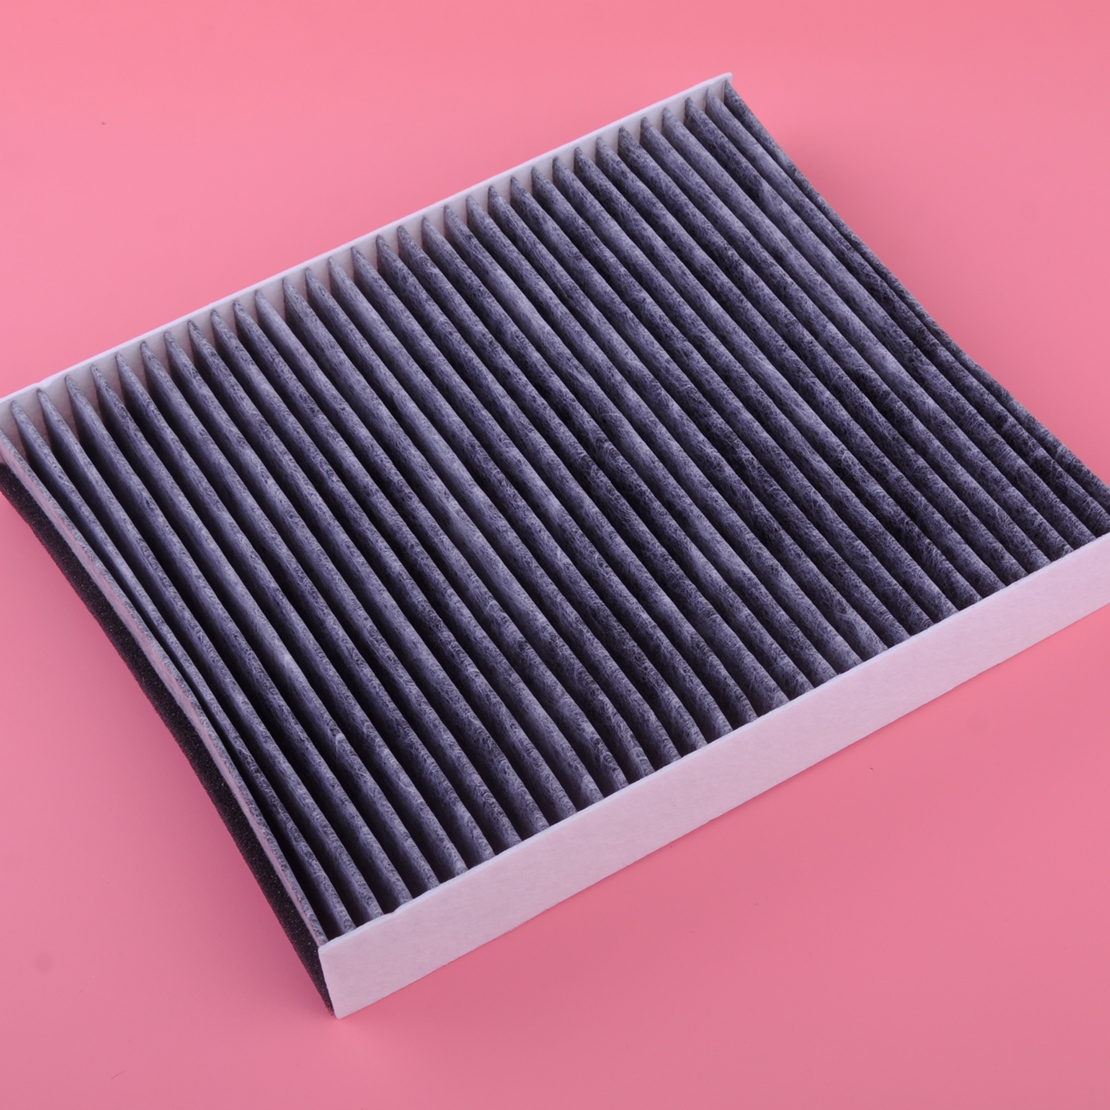 Fit Ford Escape C-Max Focus Lincoln Charcoal Car Cabin Air Filter AV6N-19G244-AA